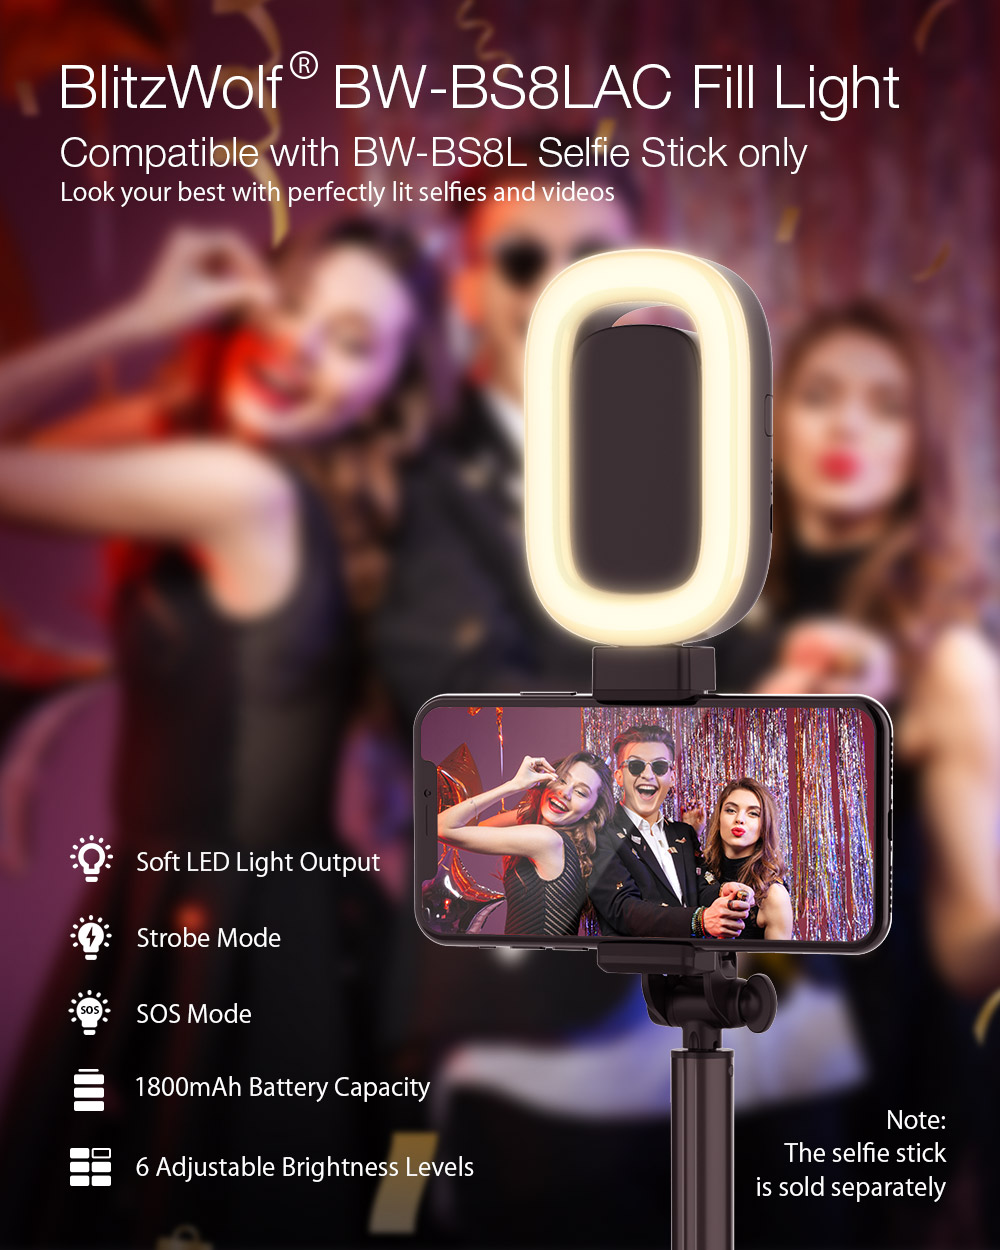 BlitzWolf® BW-BS8LAC LED Fill Light with 6 Adjustable Brightness Levels for BW-BS8L Selfie Stick